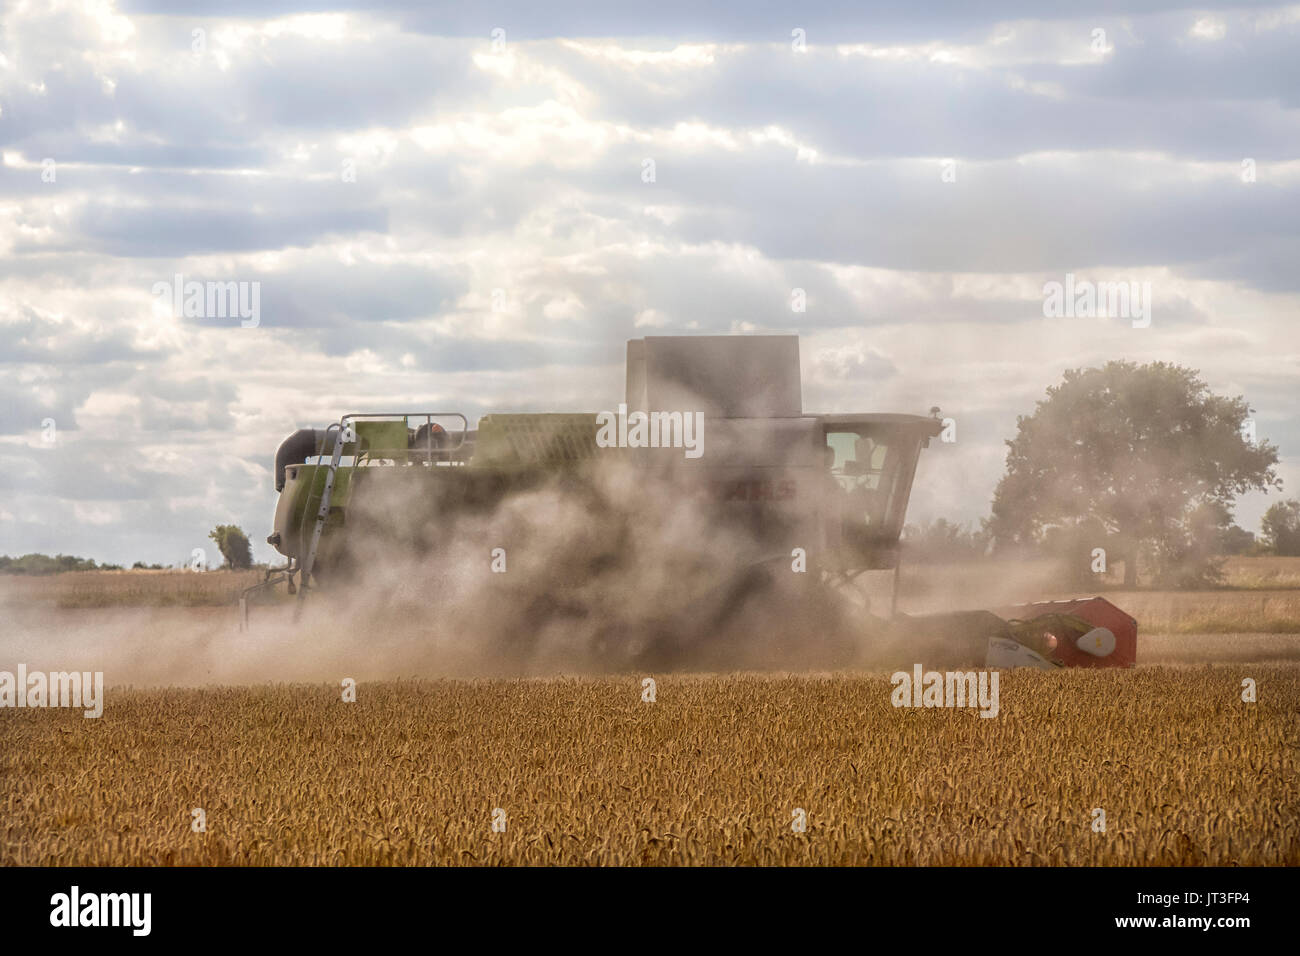 Claas Combine harvesting wheat in rural Essex field working in a cloud of dust - Stock Image